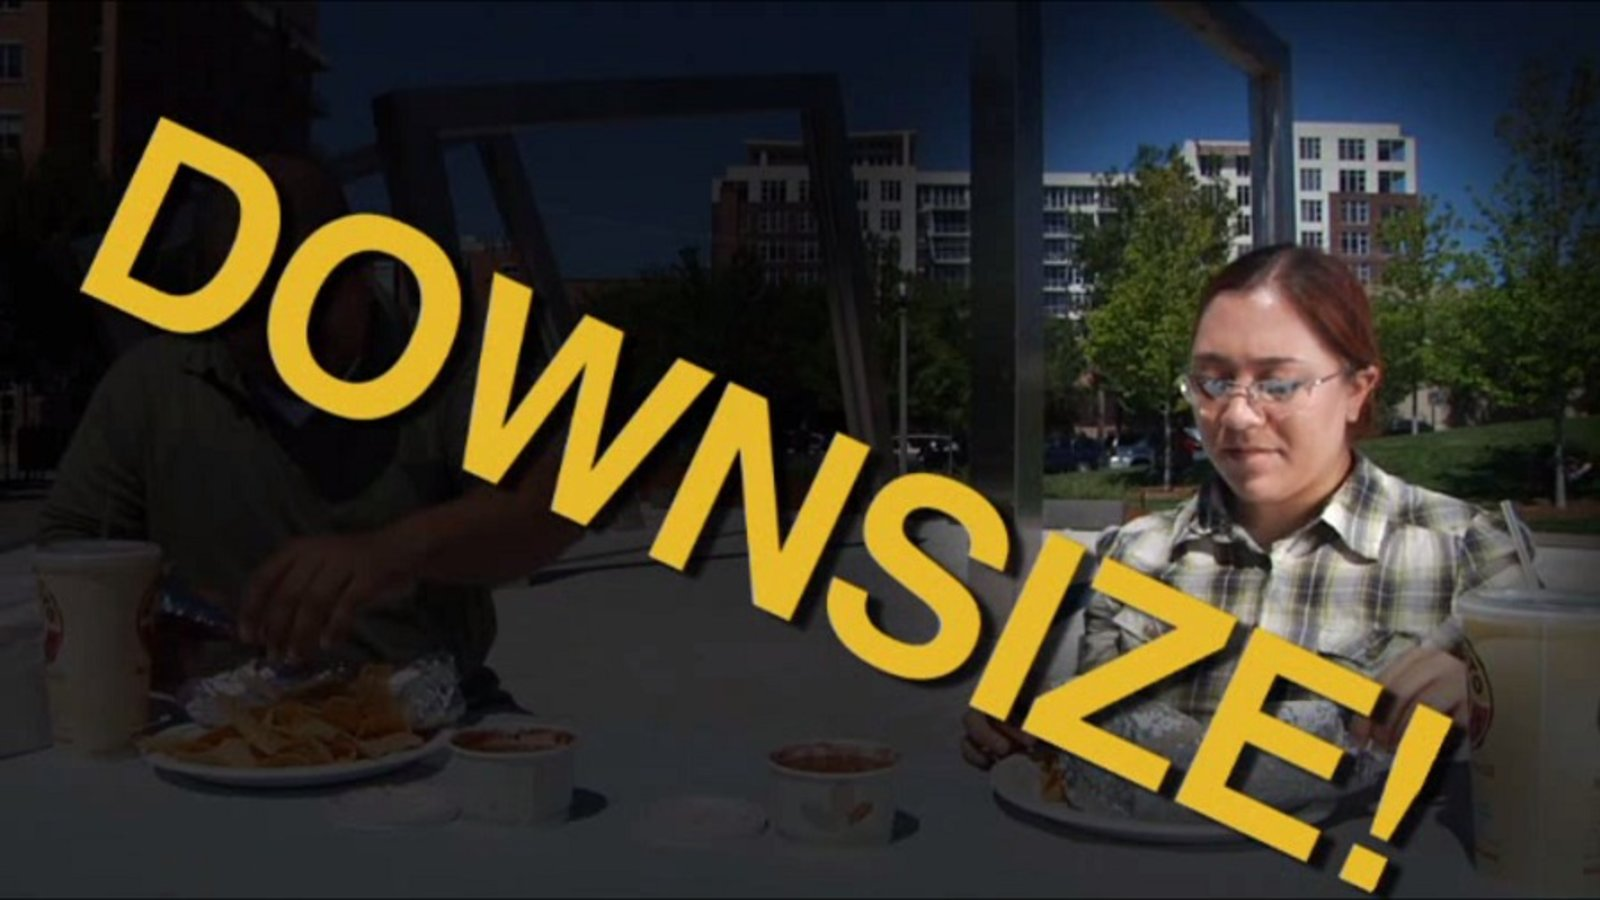 Eat Less! The Upside of Downsizing